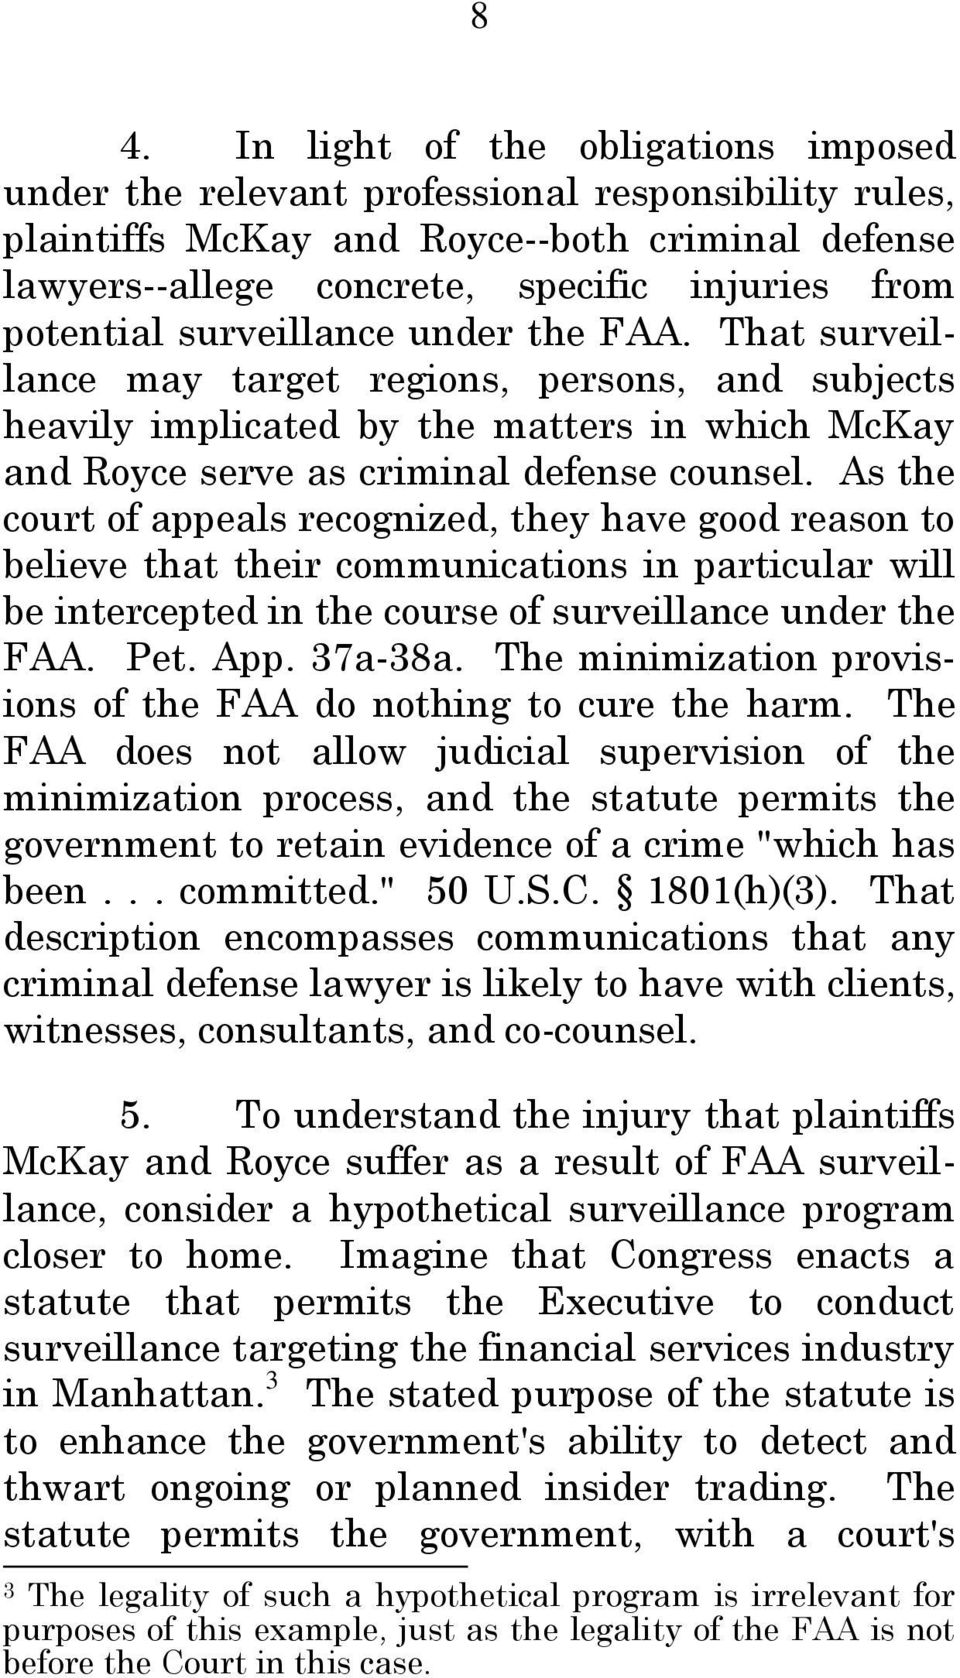 As the court of appeals recognized, they have good reason to believe that their communications in particular will be intercepted in the course of surveillance under the FAA. Pet. App. 37a-38a.